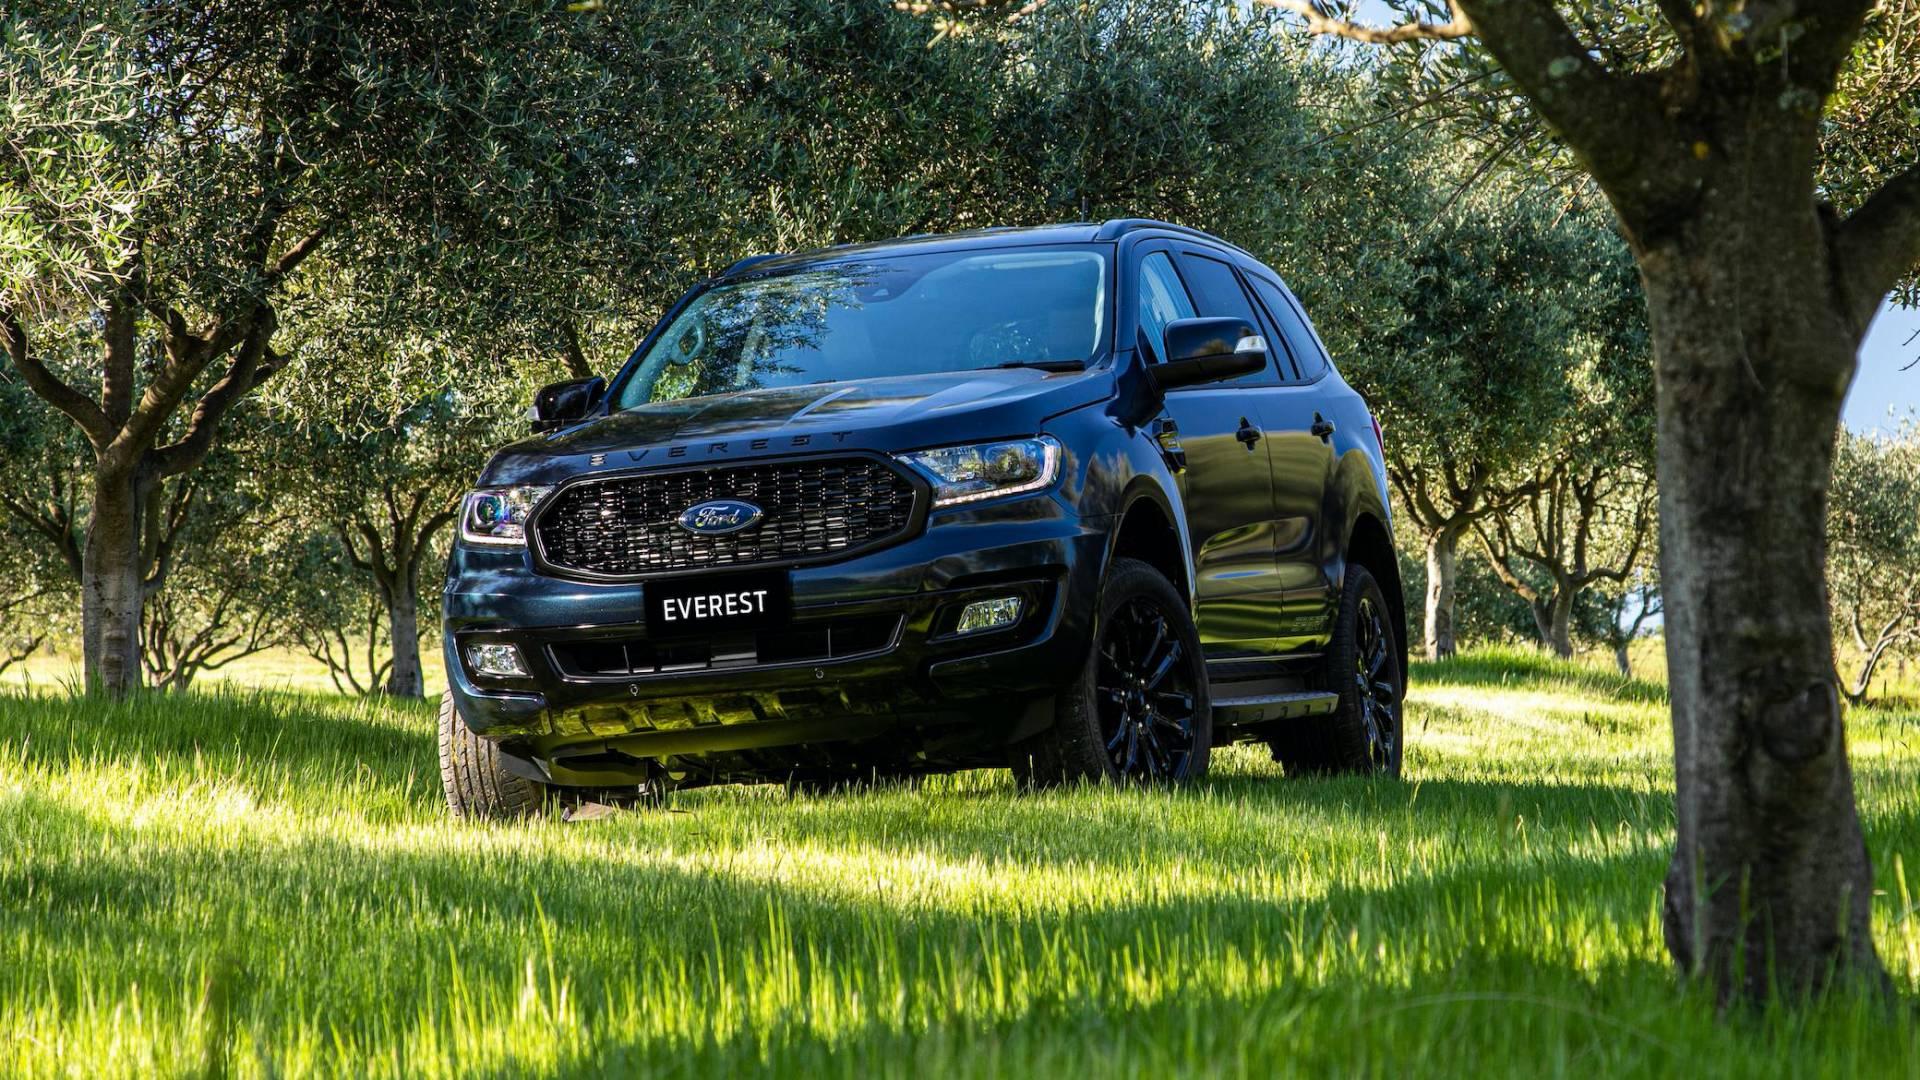 2020-ford-everest-sport-australia-spec-4.jpg